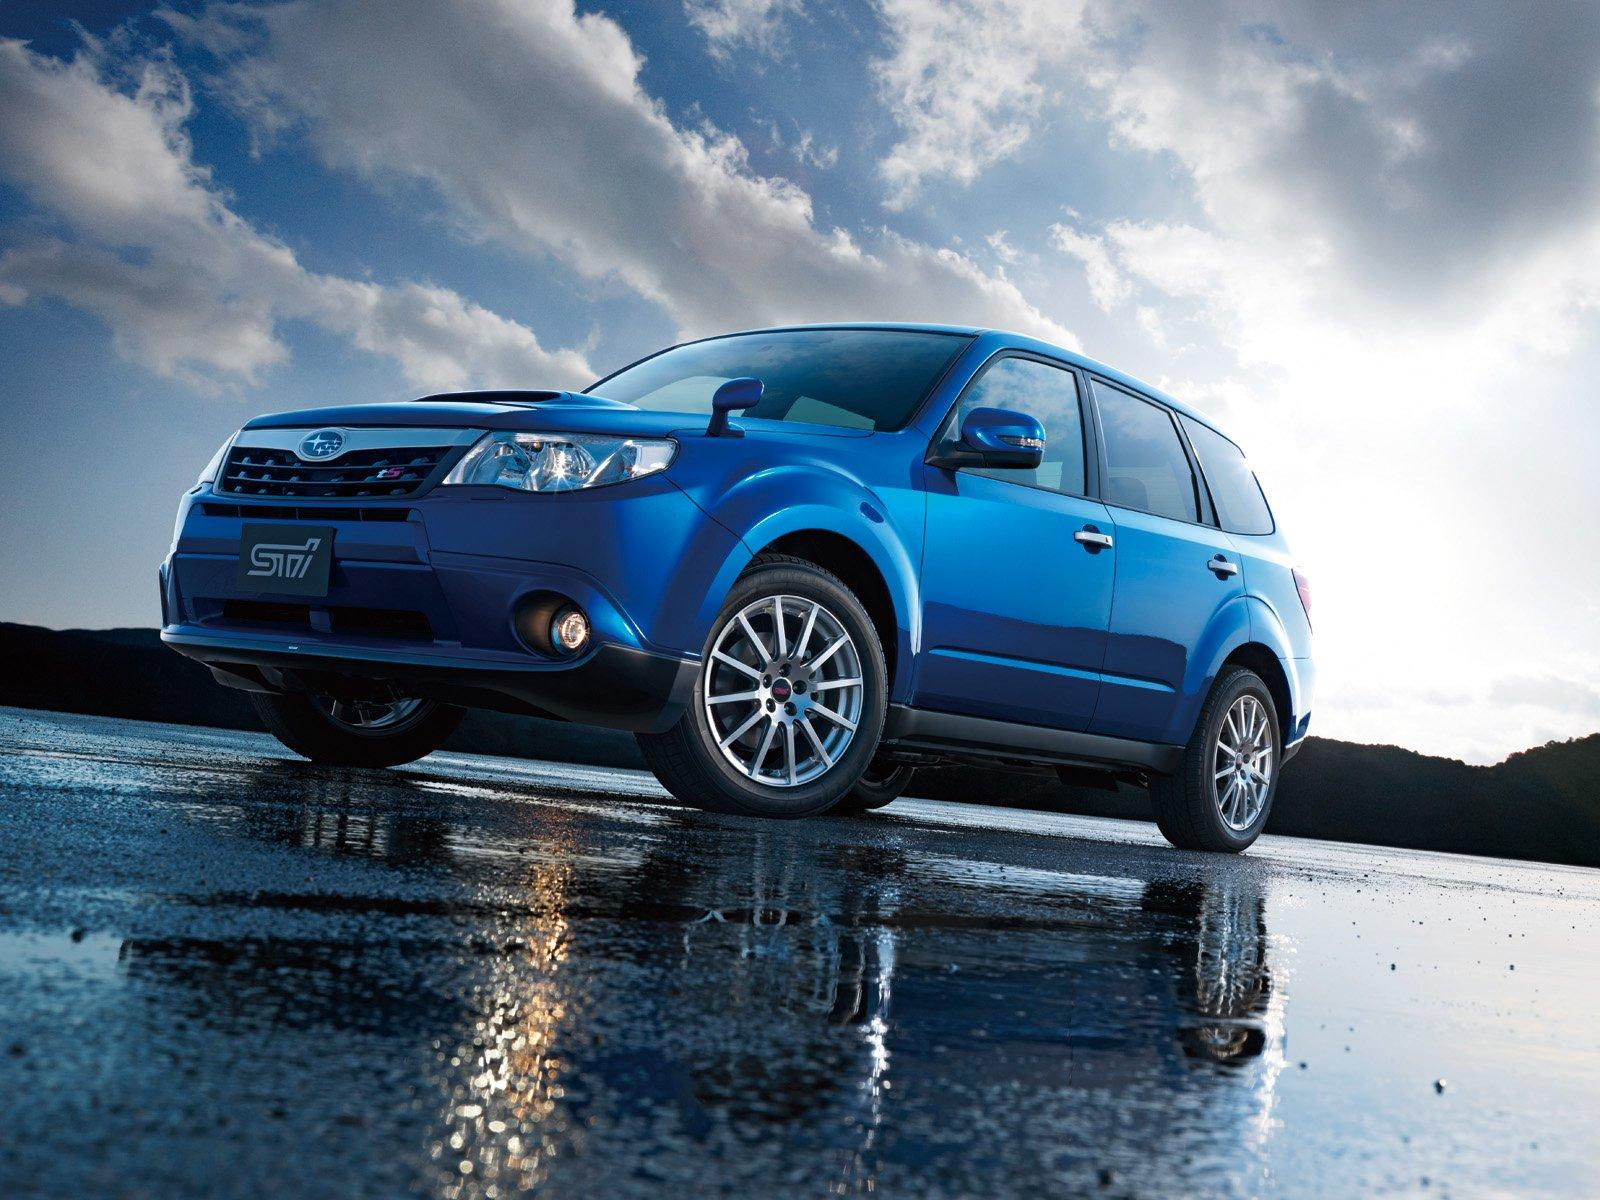 2011 Subaru Forester St Family Turbo Vehicle